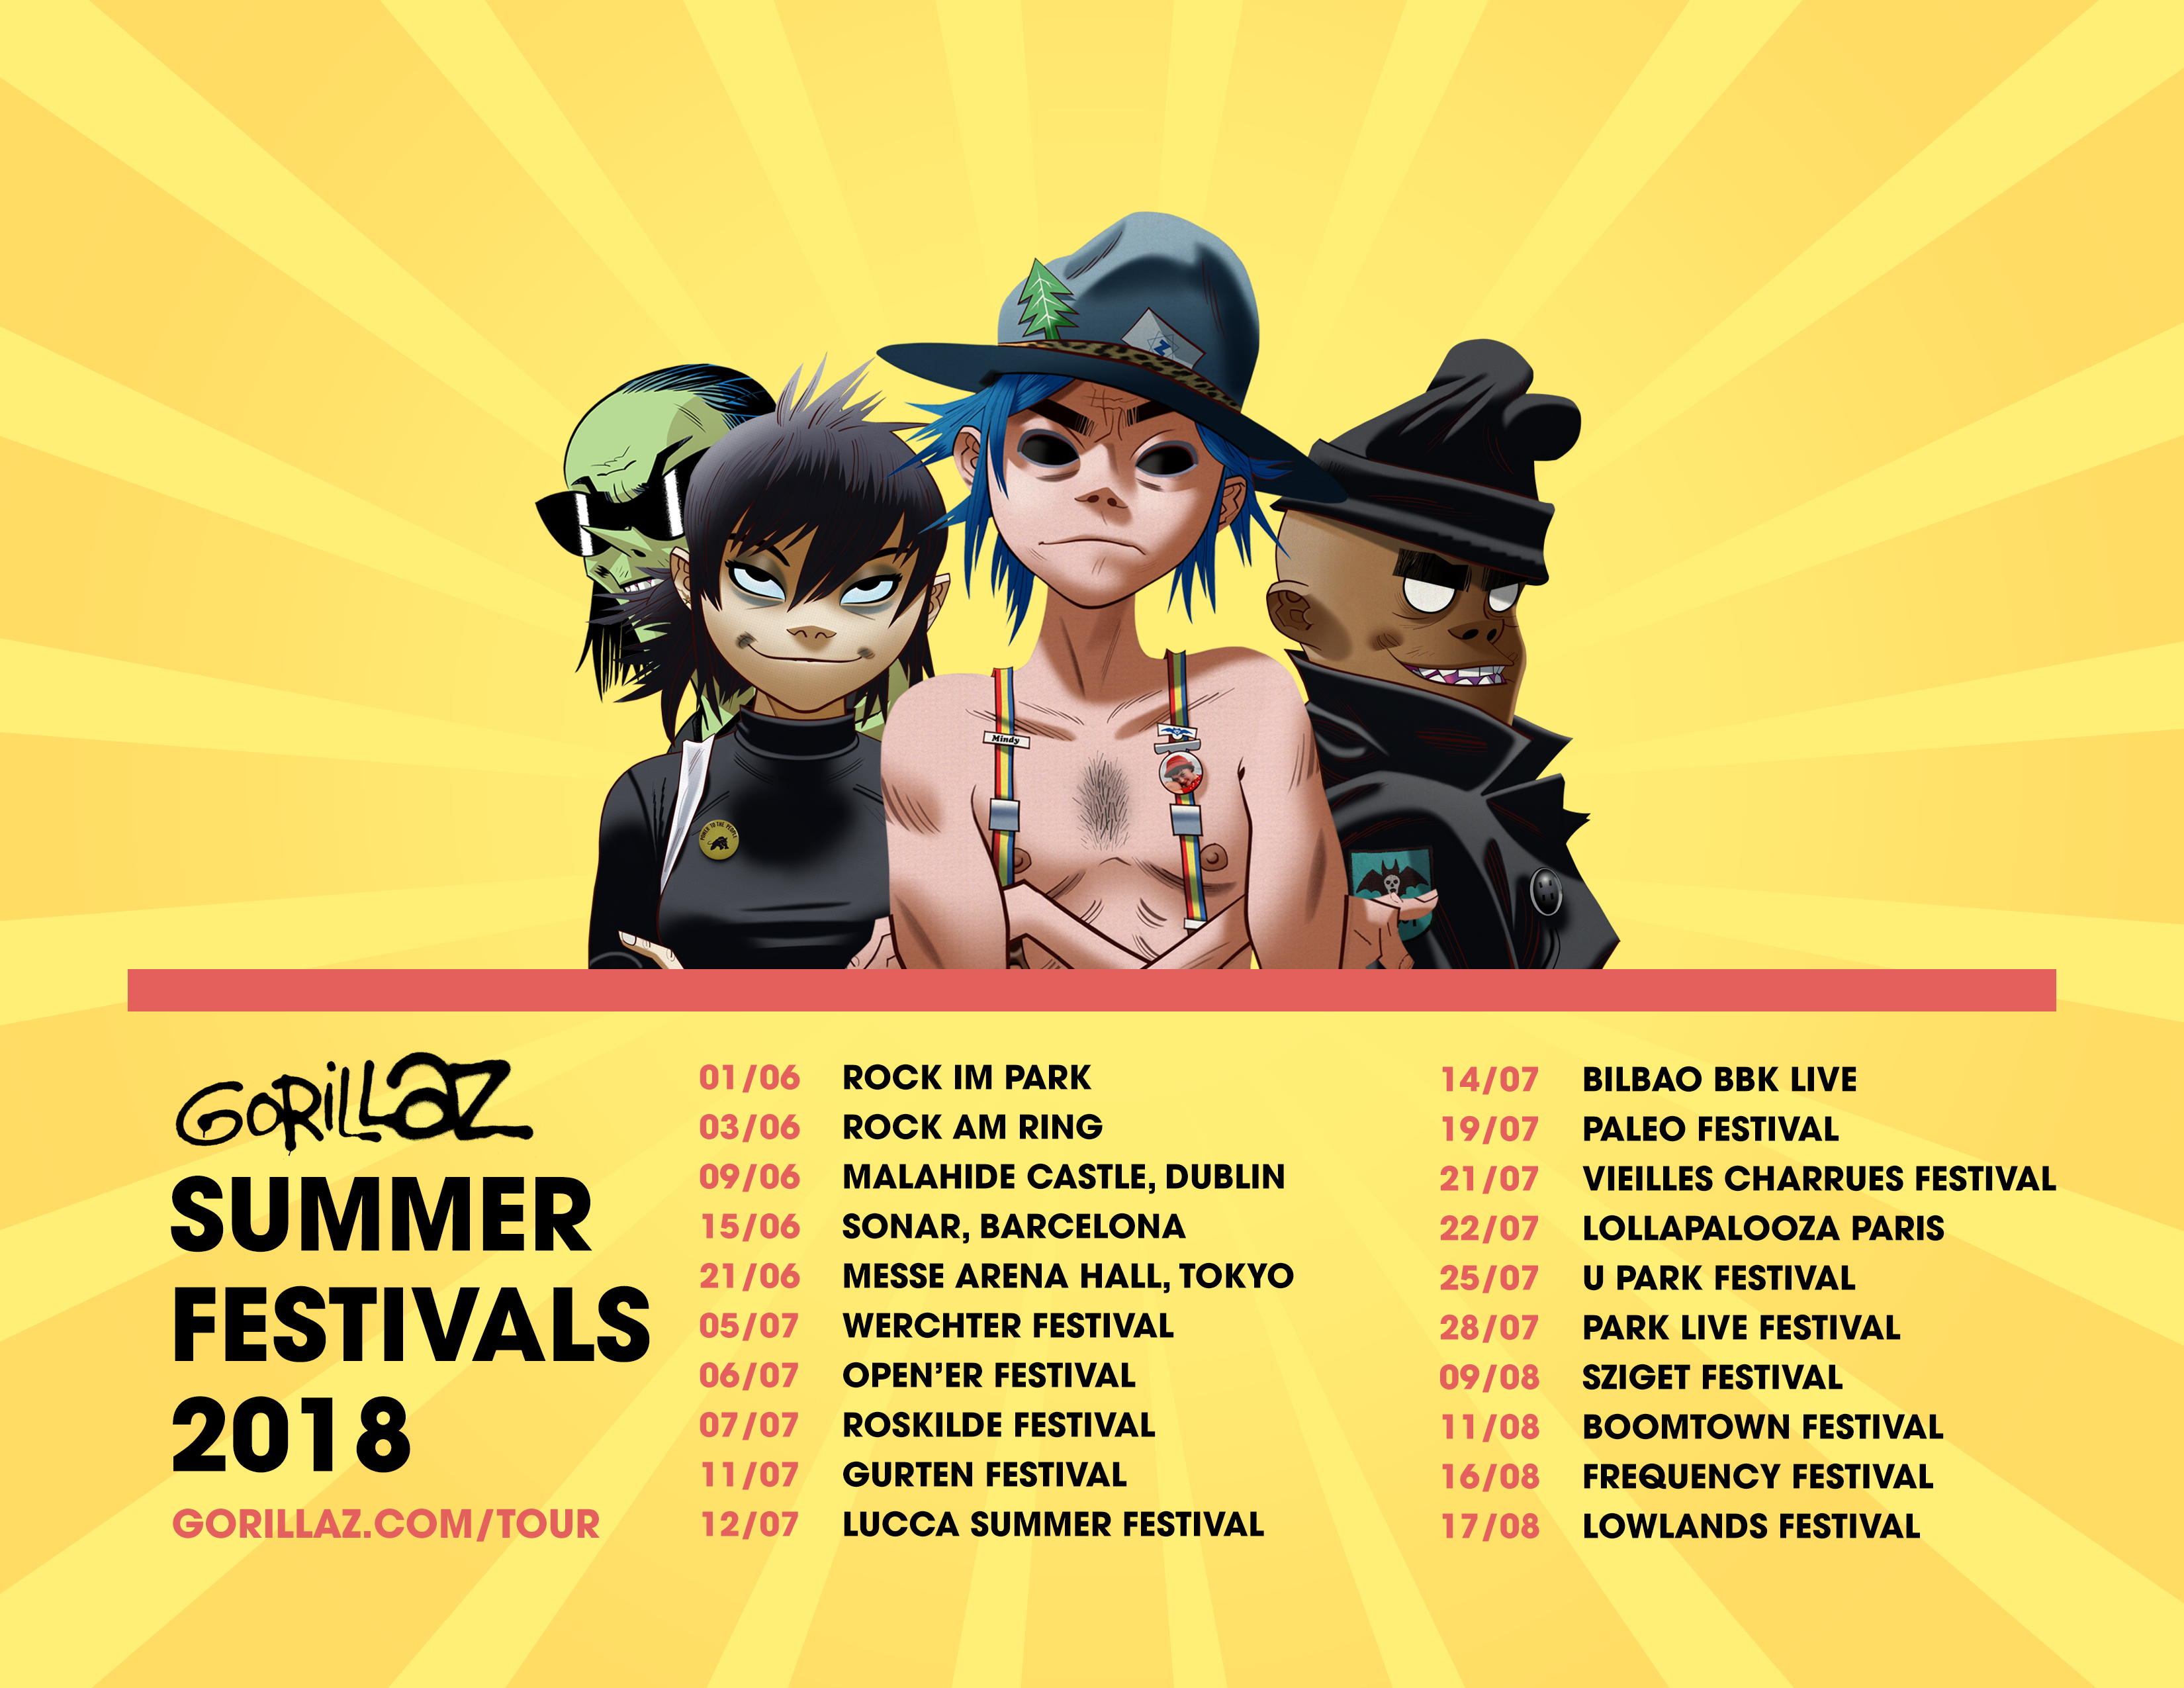 Gorillaz hit the road this summer!